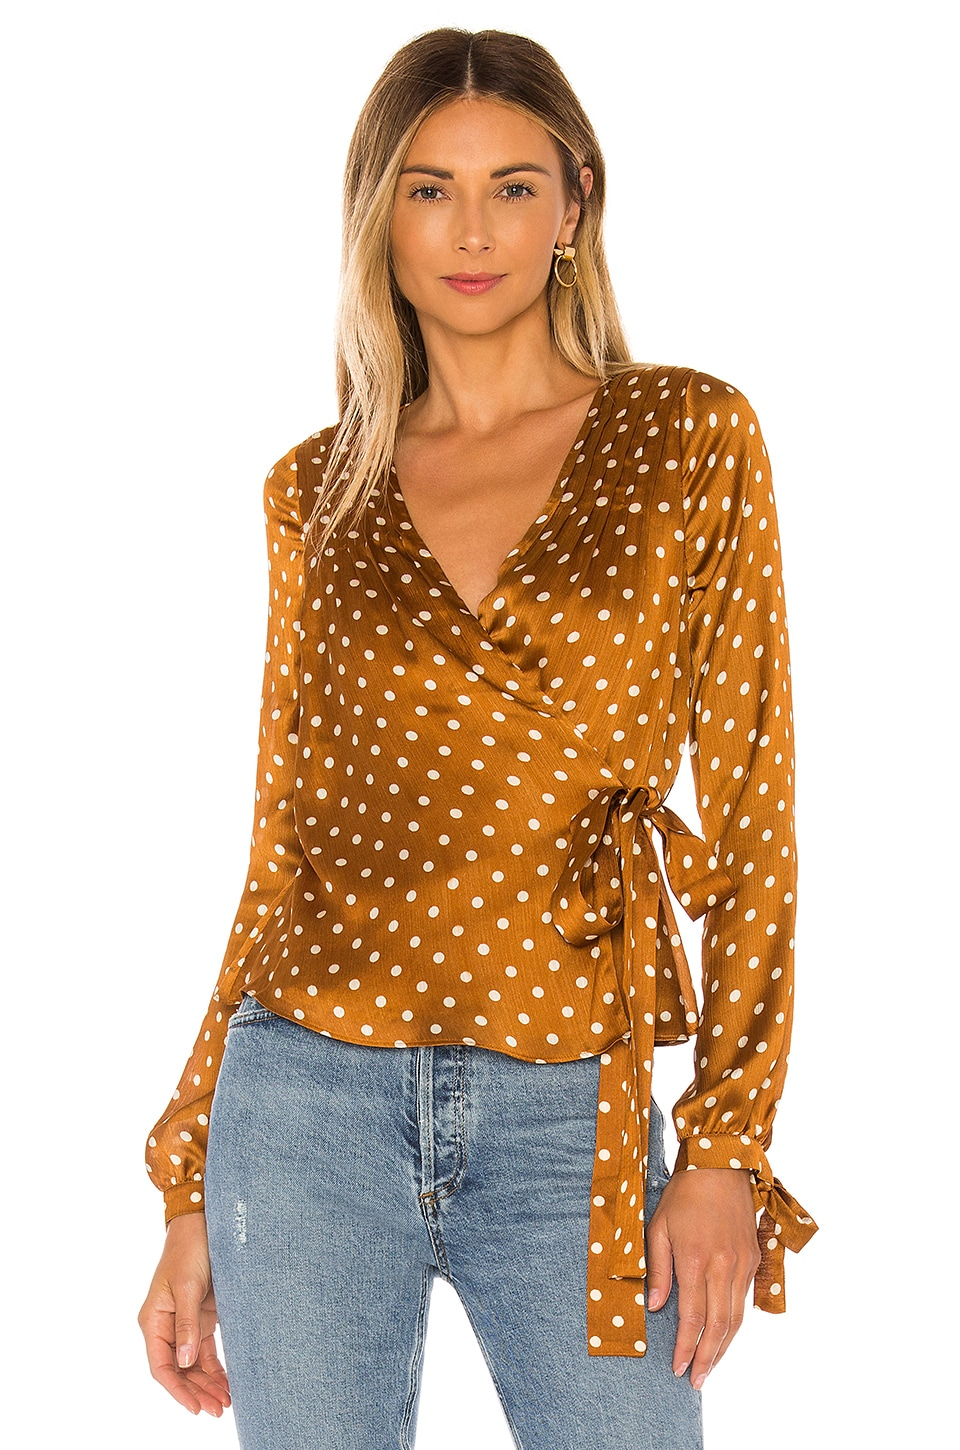 Tularosa Charmaine Wrap Top in Camel